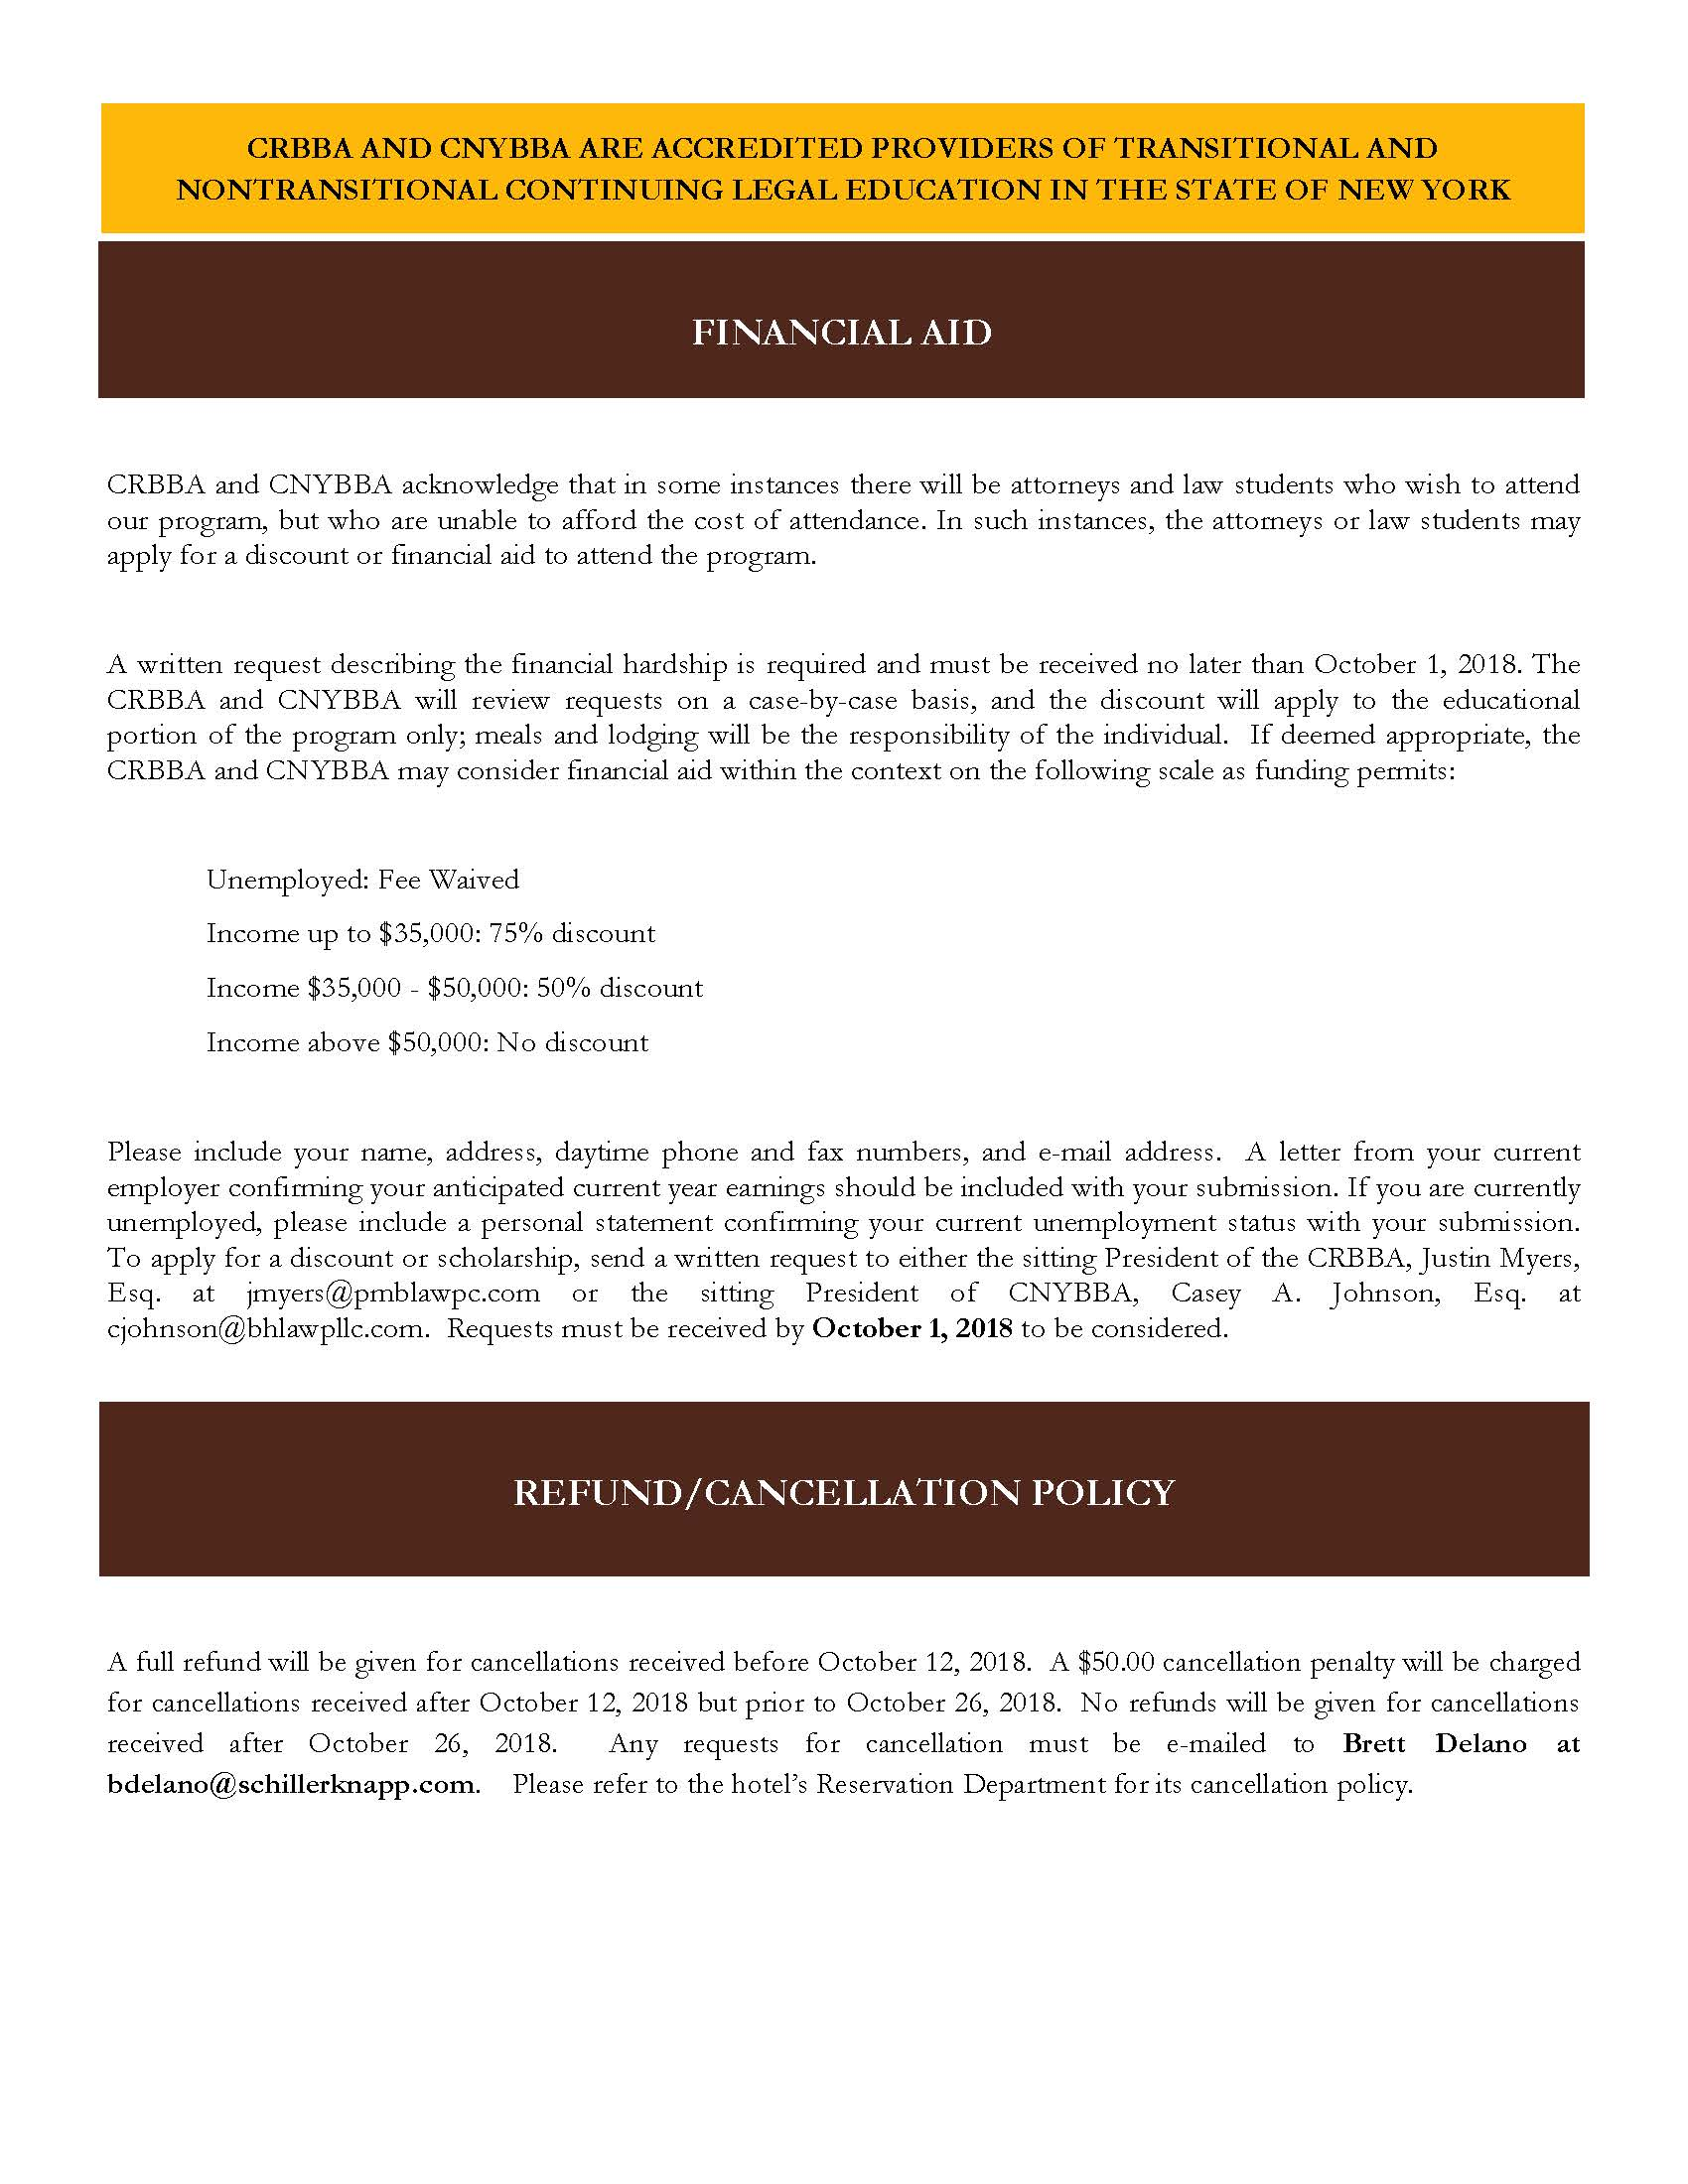 Final 2018 Conference Brochure (00278606xC66EC) (002)_Page_7.jpg